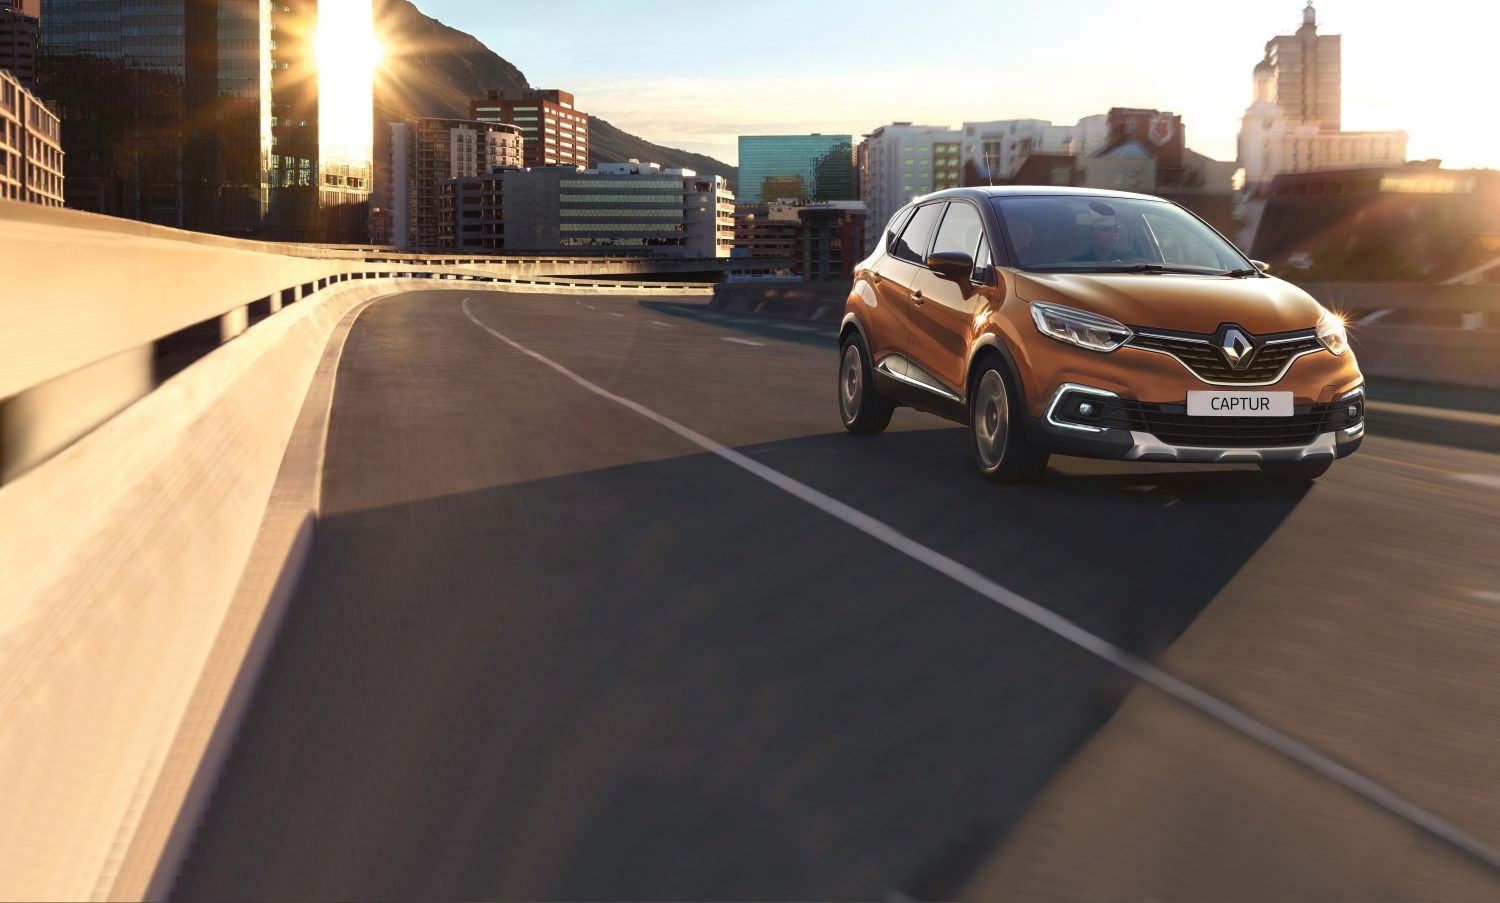 renault-captur-desktop.jpg.ximg.l_full_m.smart.jpg